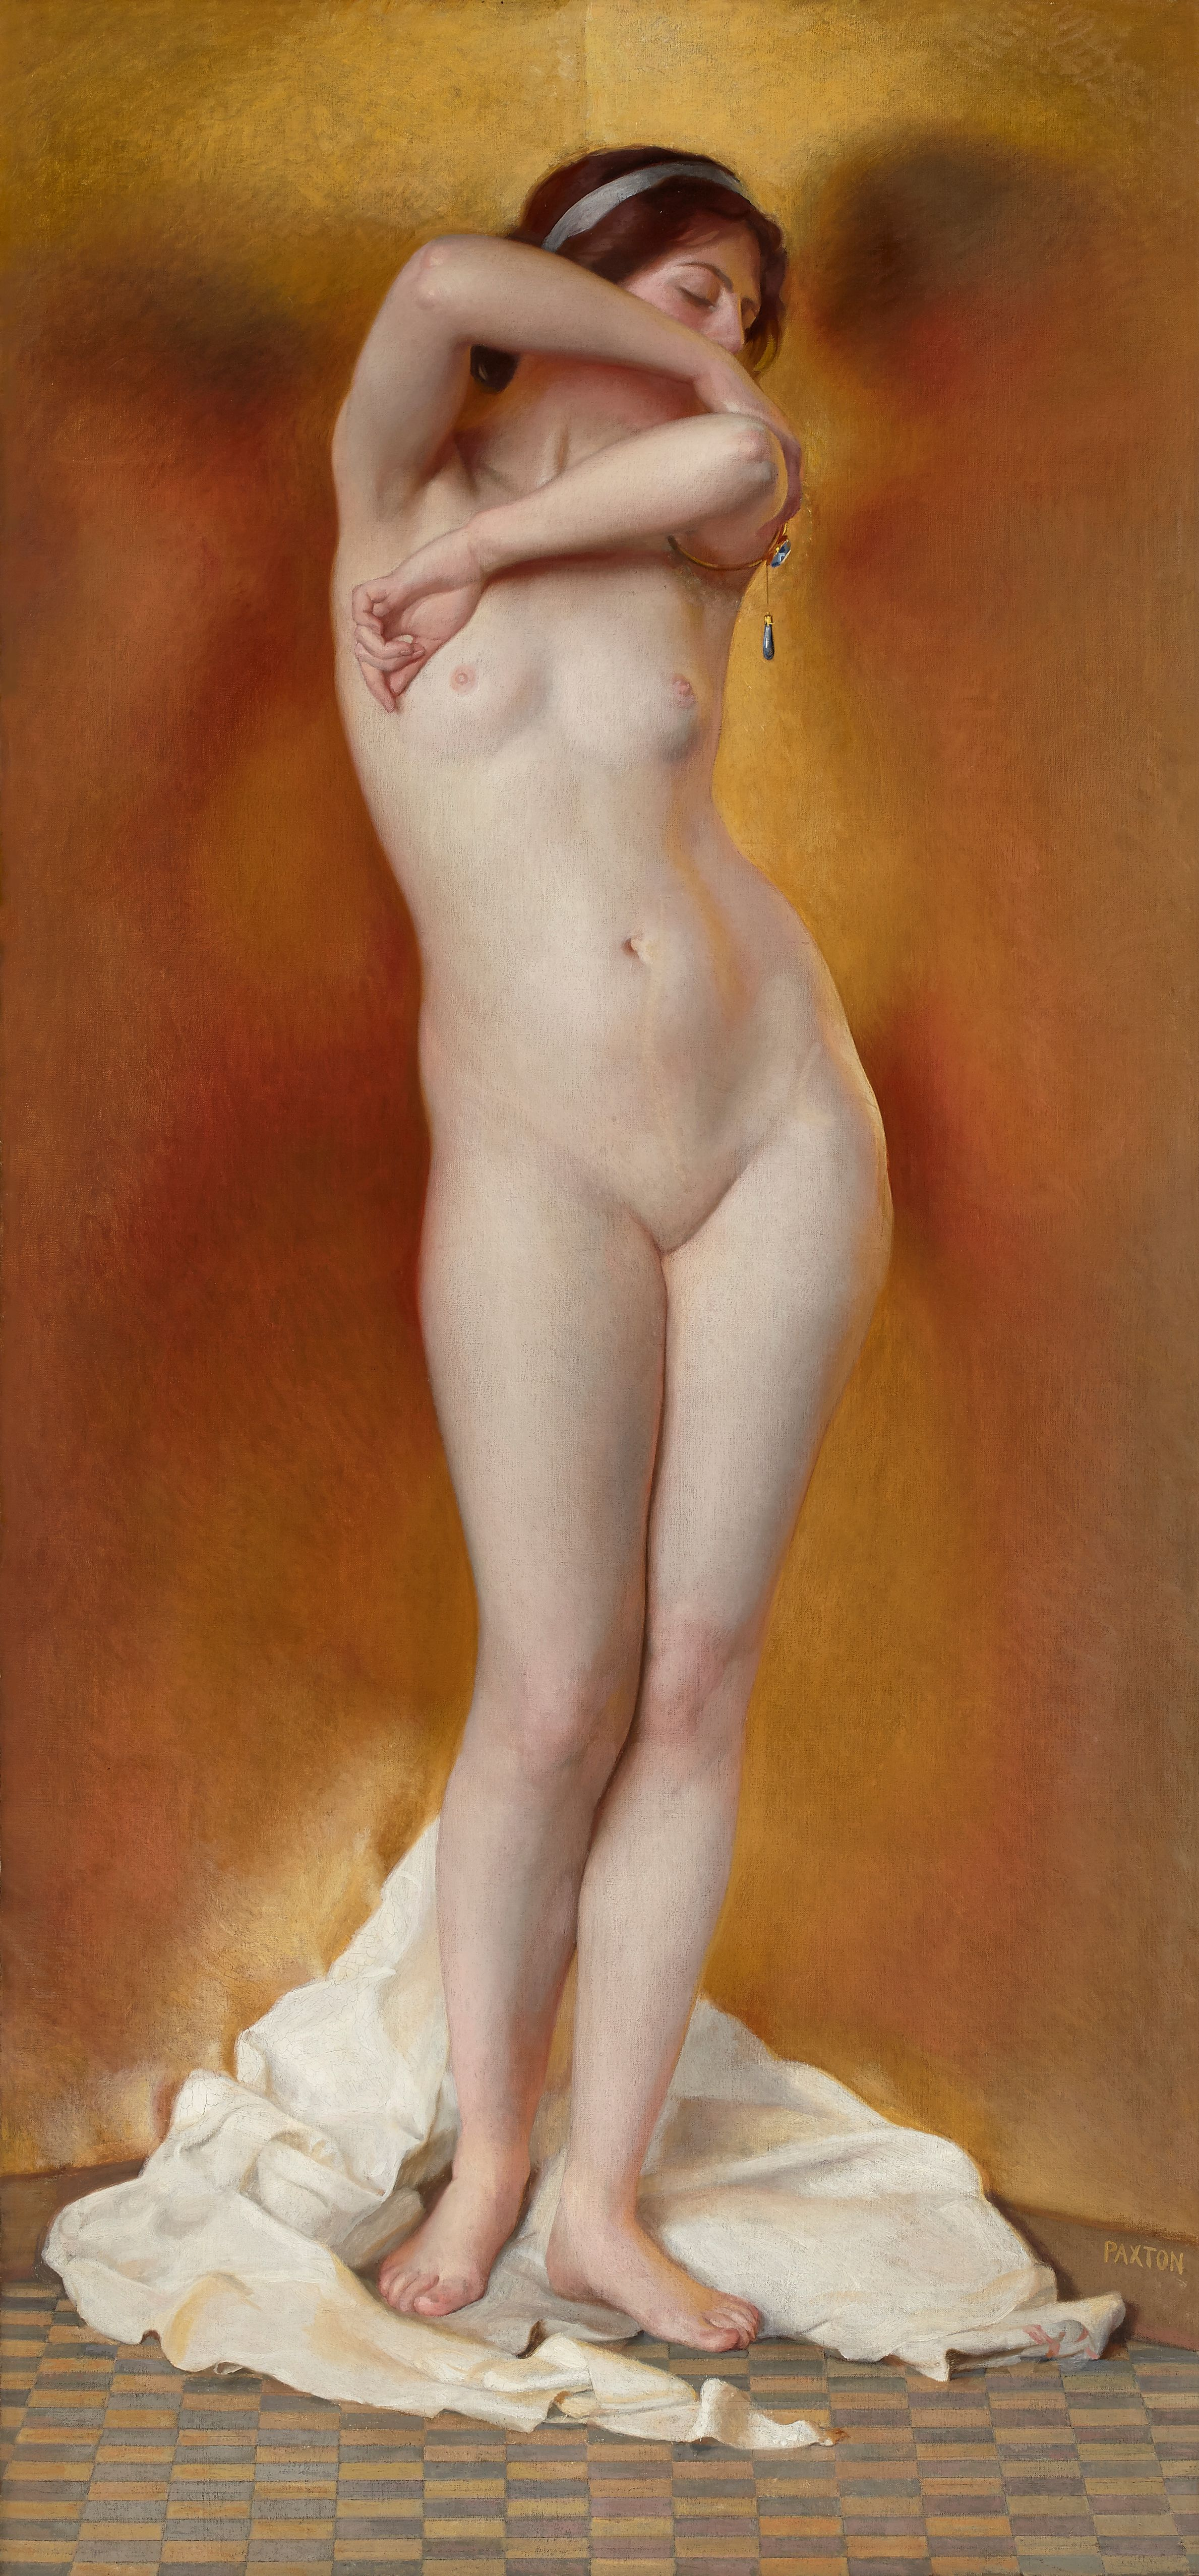 Nudity In Art